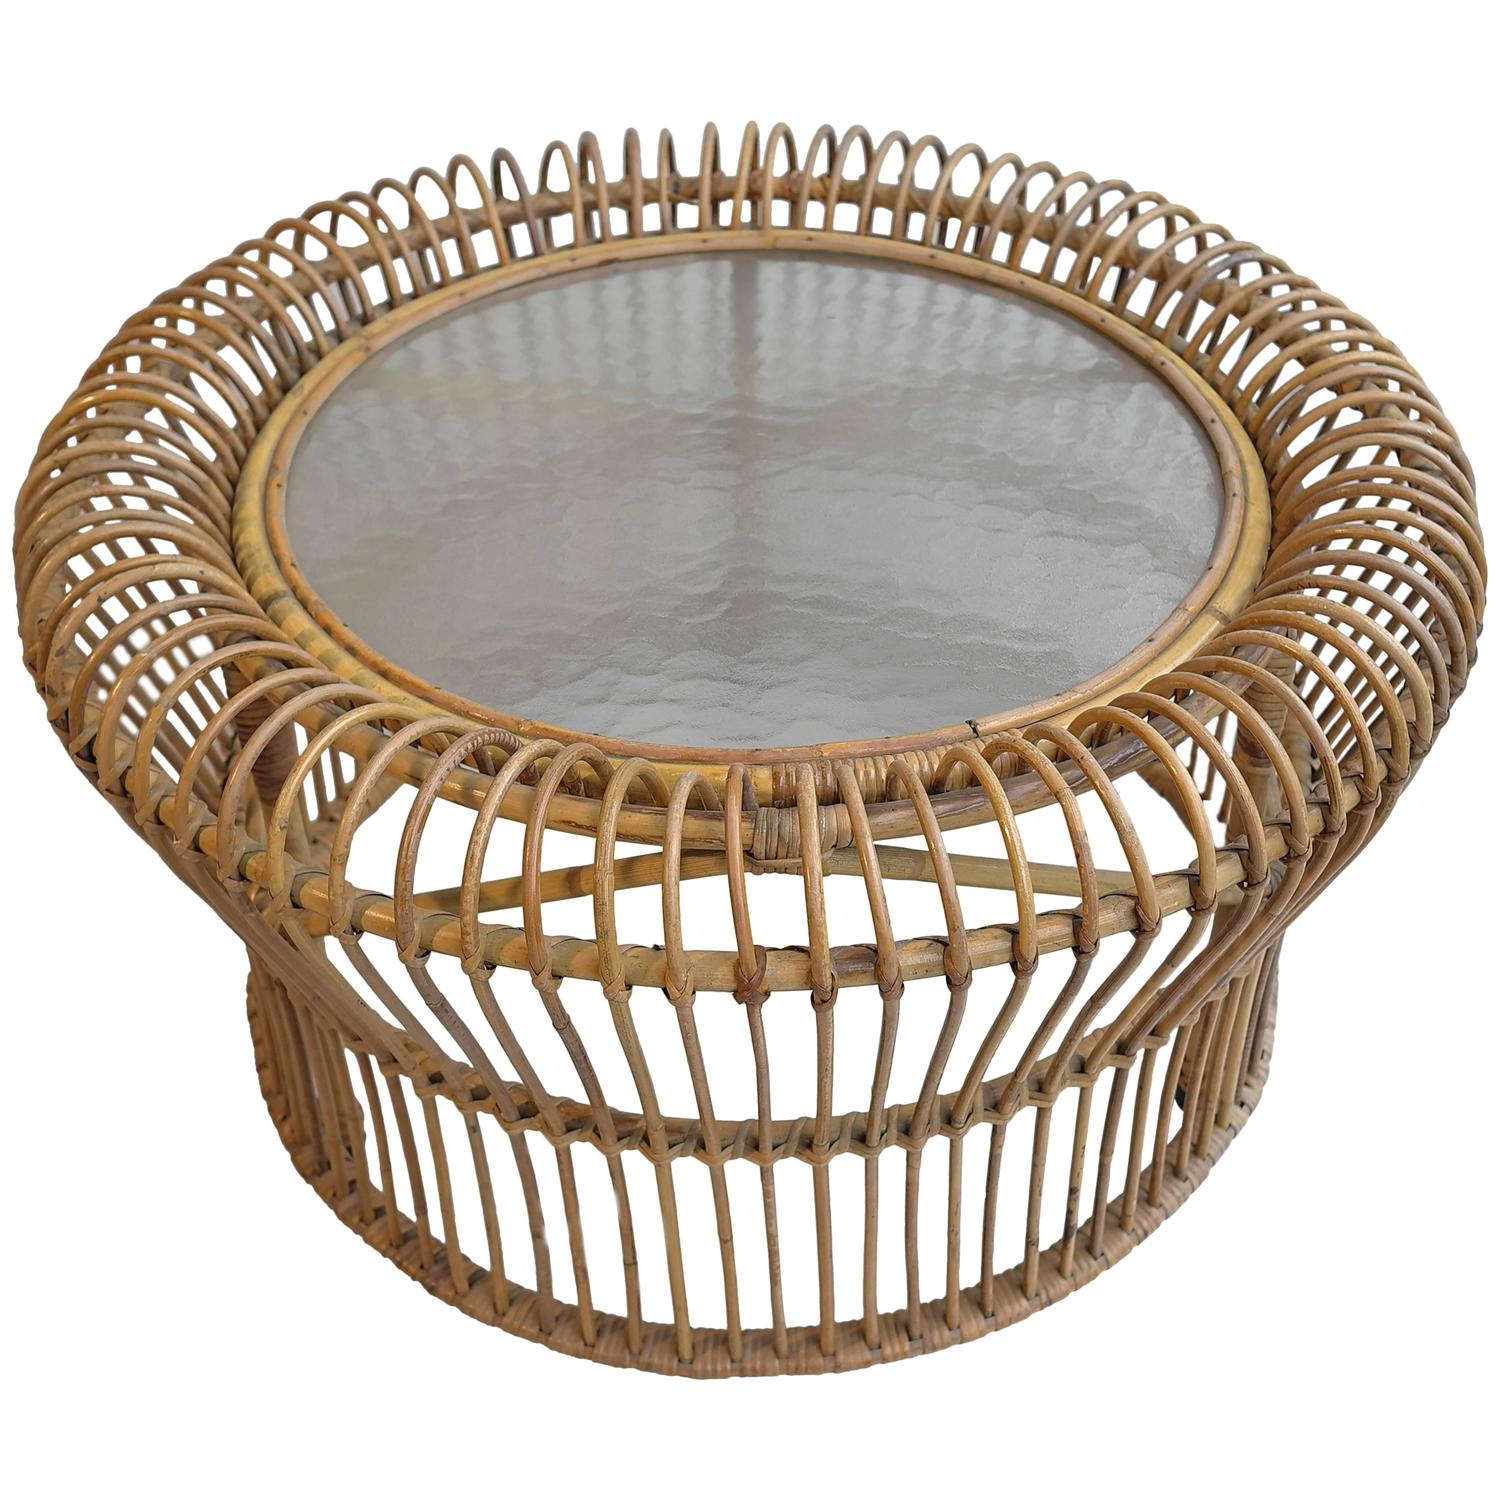 Italian Rattan Coffee Table In Style Of Franco Albini For At 1stdibs